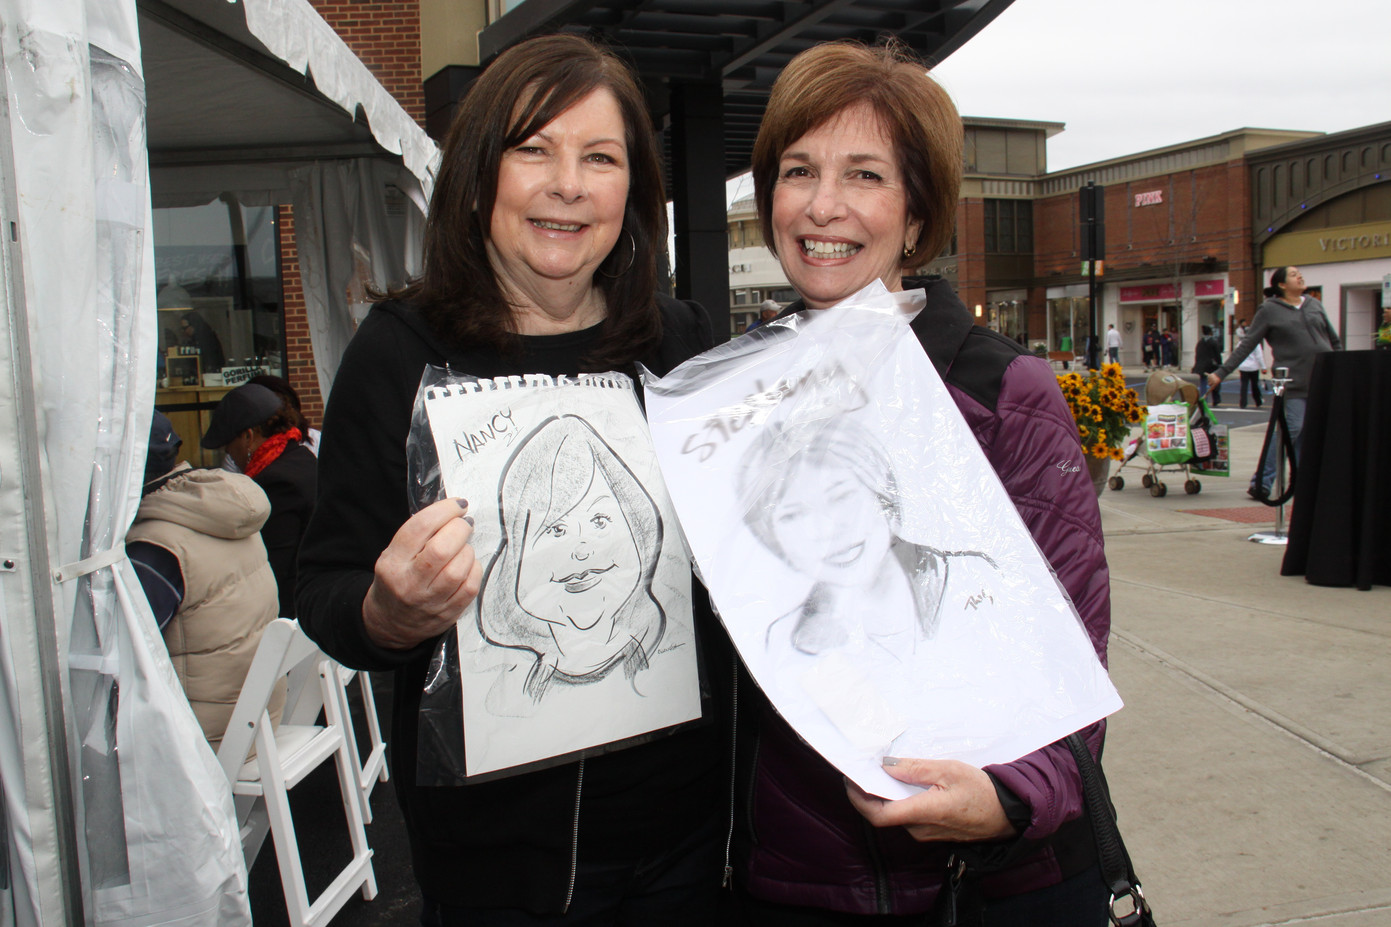 Caricature-And-Cartoon-Art-Of-Two-Woman.jpg